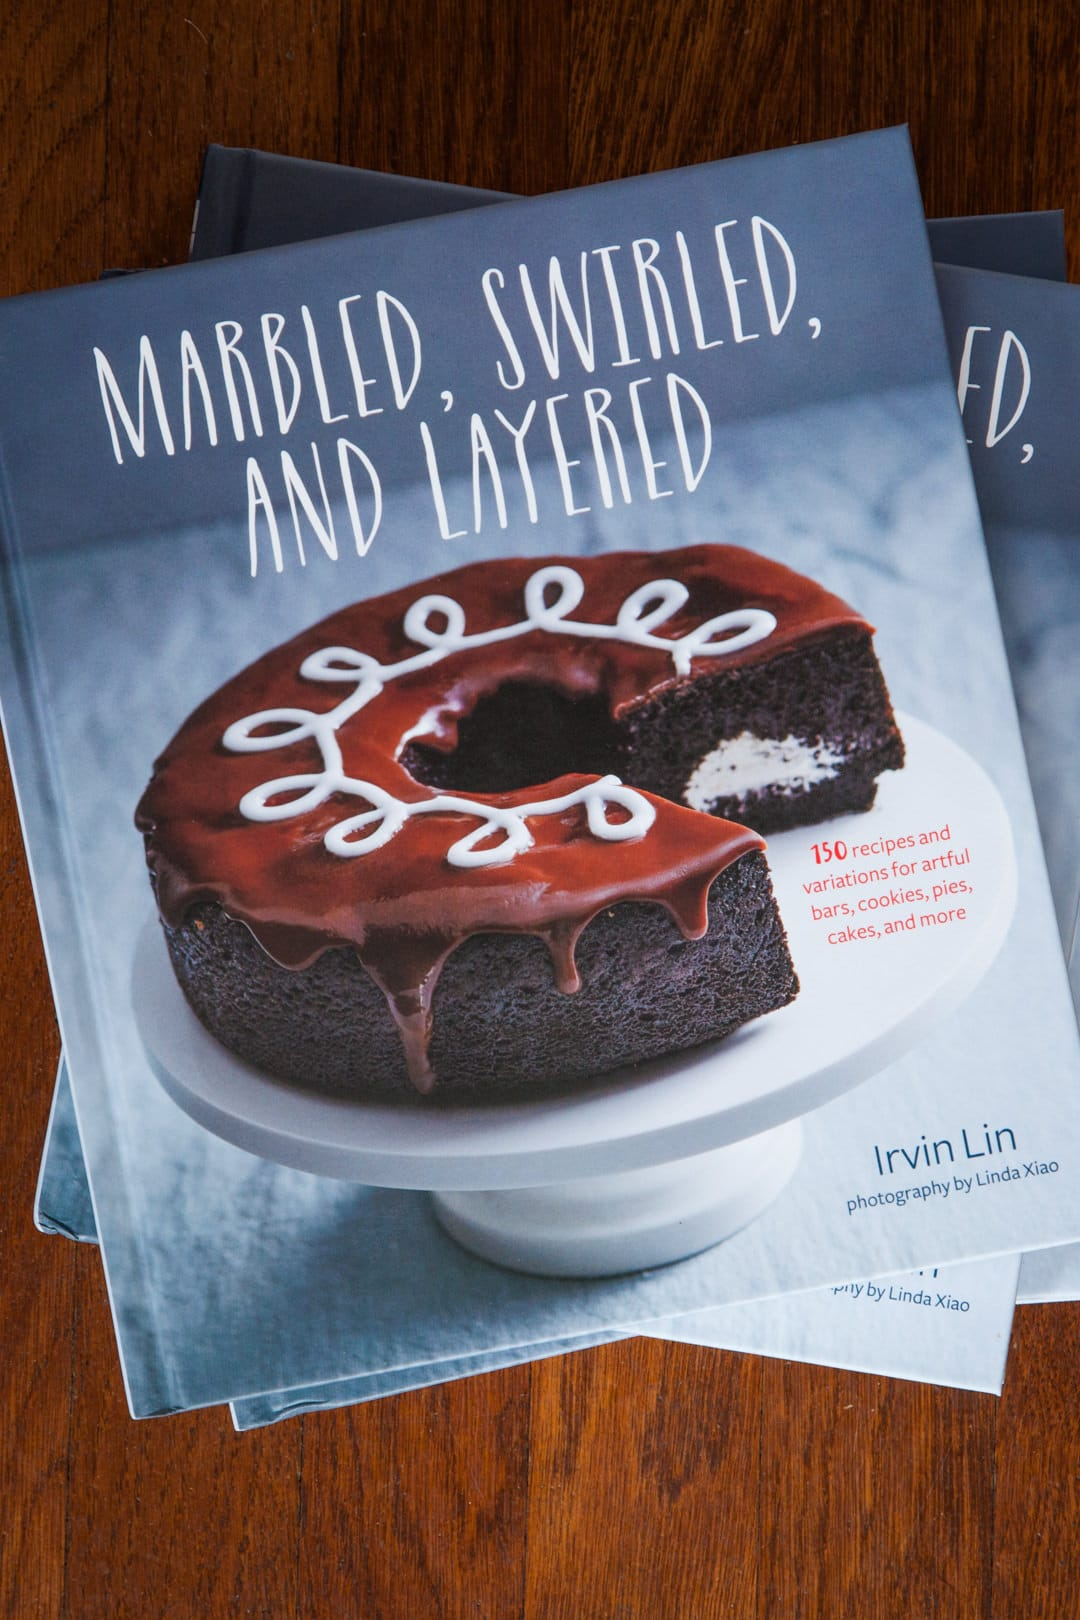 Marbled, Swirled, and Layered Cookbook by Irvin Lin of Eat the Love.